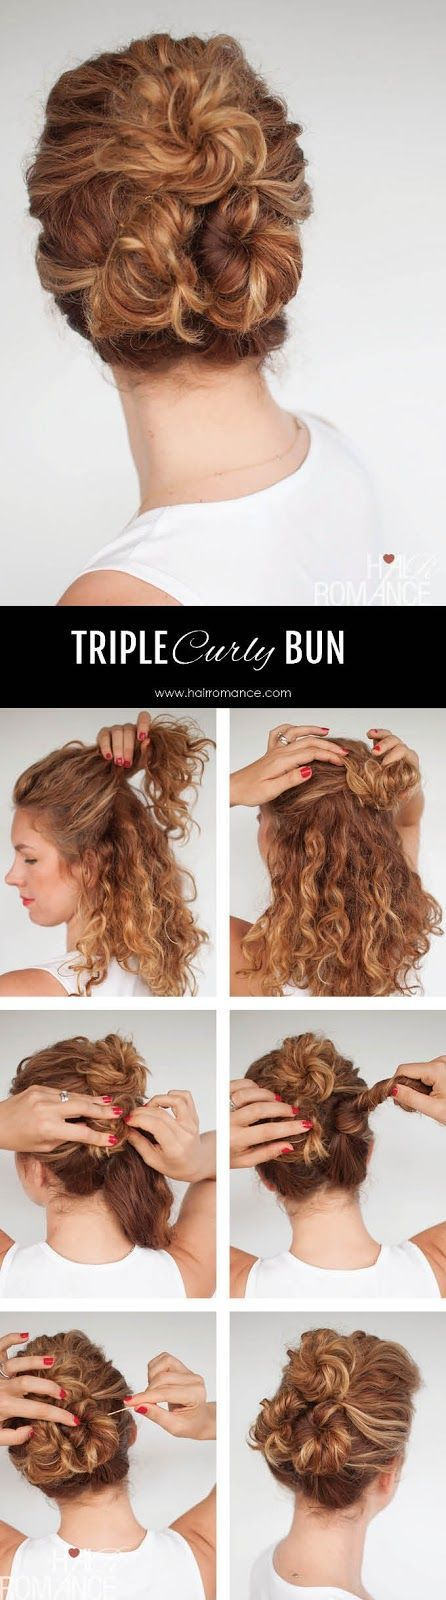 Hair-Romance-Easy-everyday-curly-hairstyle-tutorials-%E2%80%93-the-curly-triple-bun-4.jpg (446×1600)